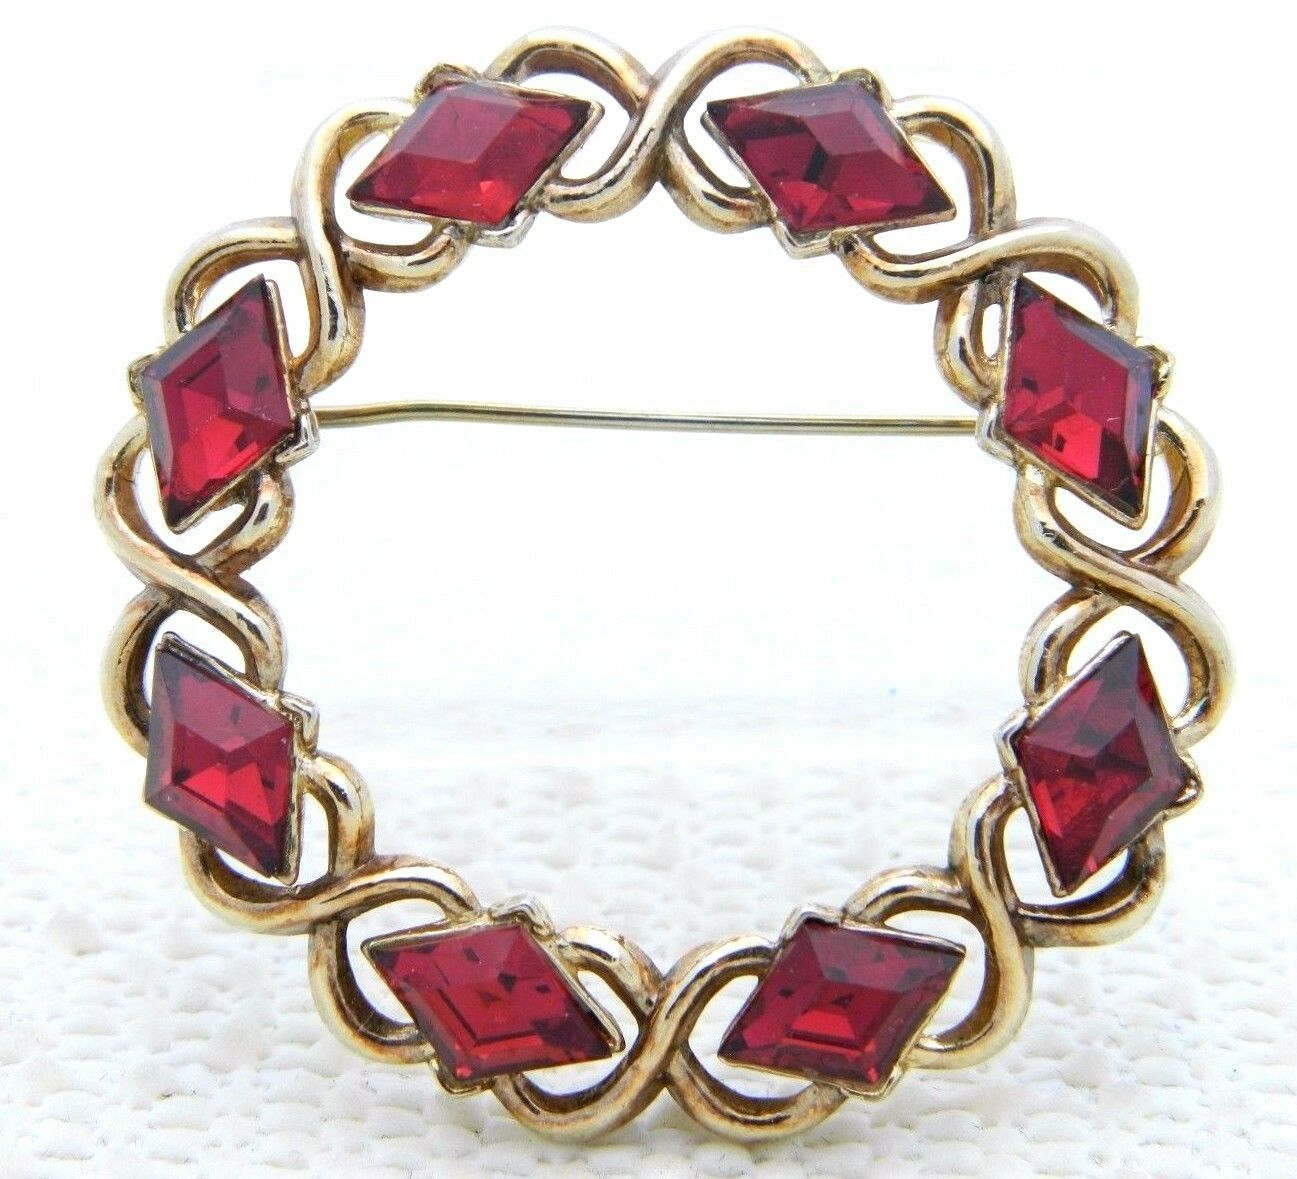 Primary image for VTG CROWN TRIFARI Patent Pending Red Rhinestone Diamond Wreath Pin Brooch